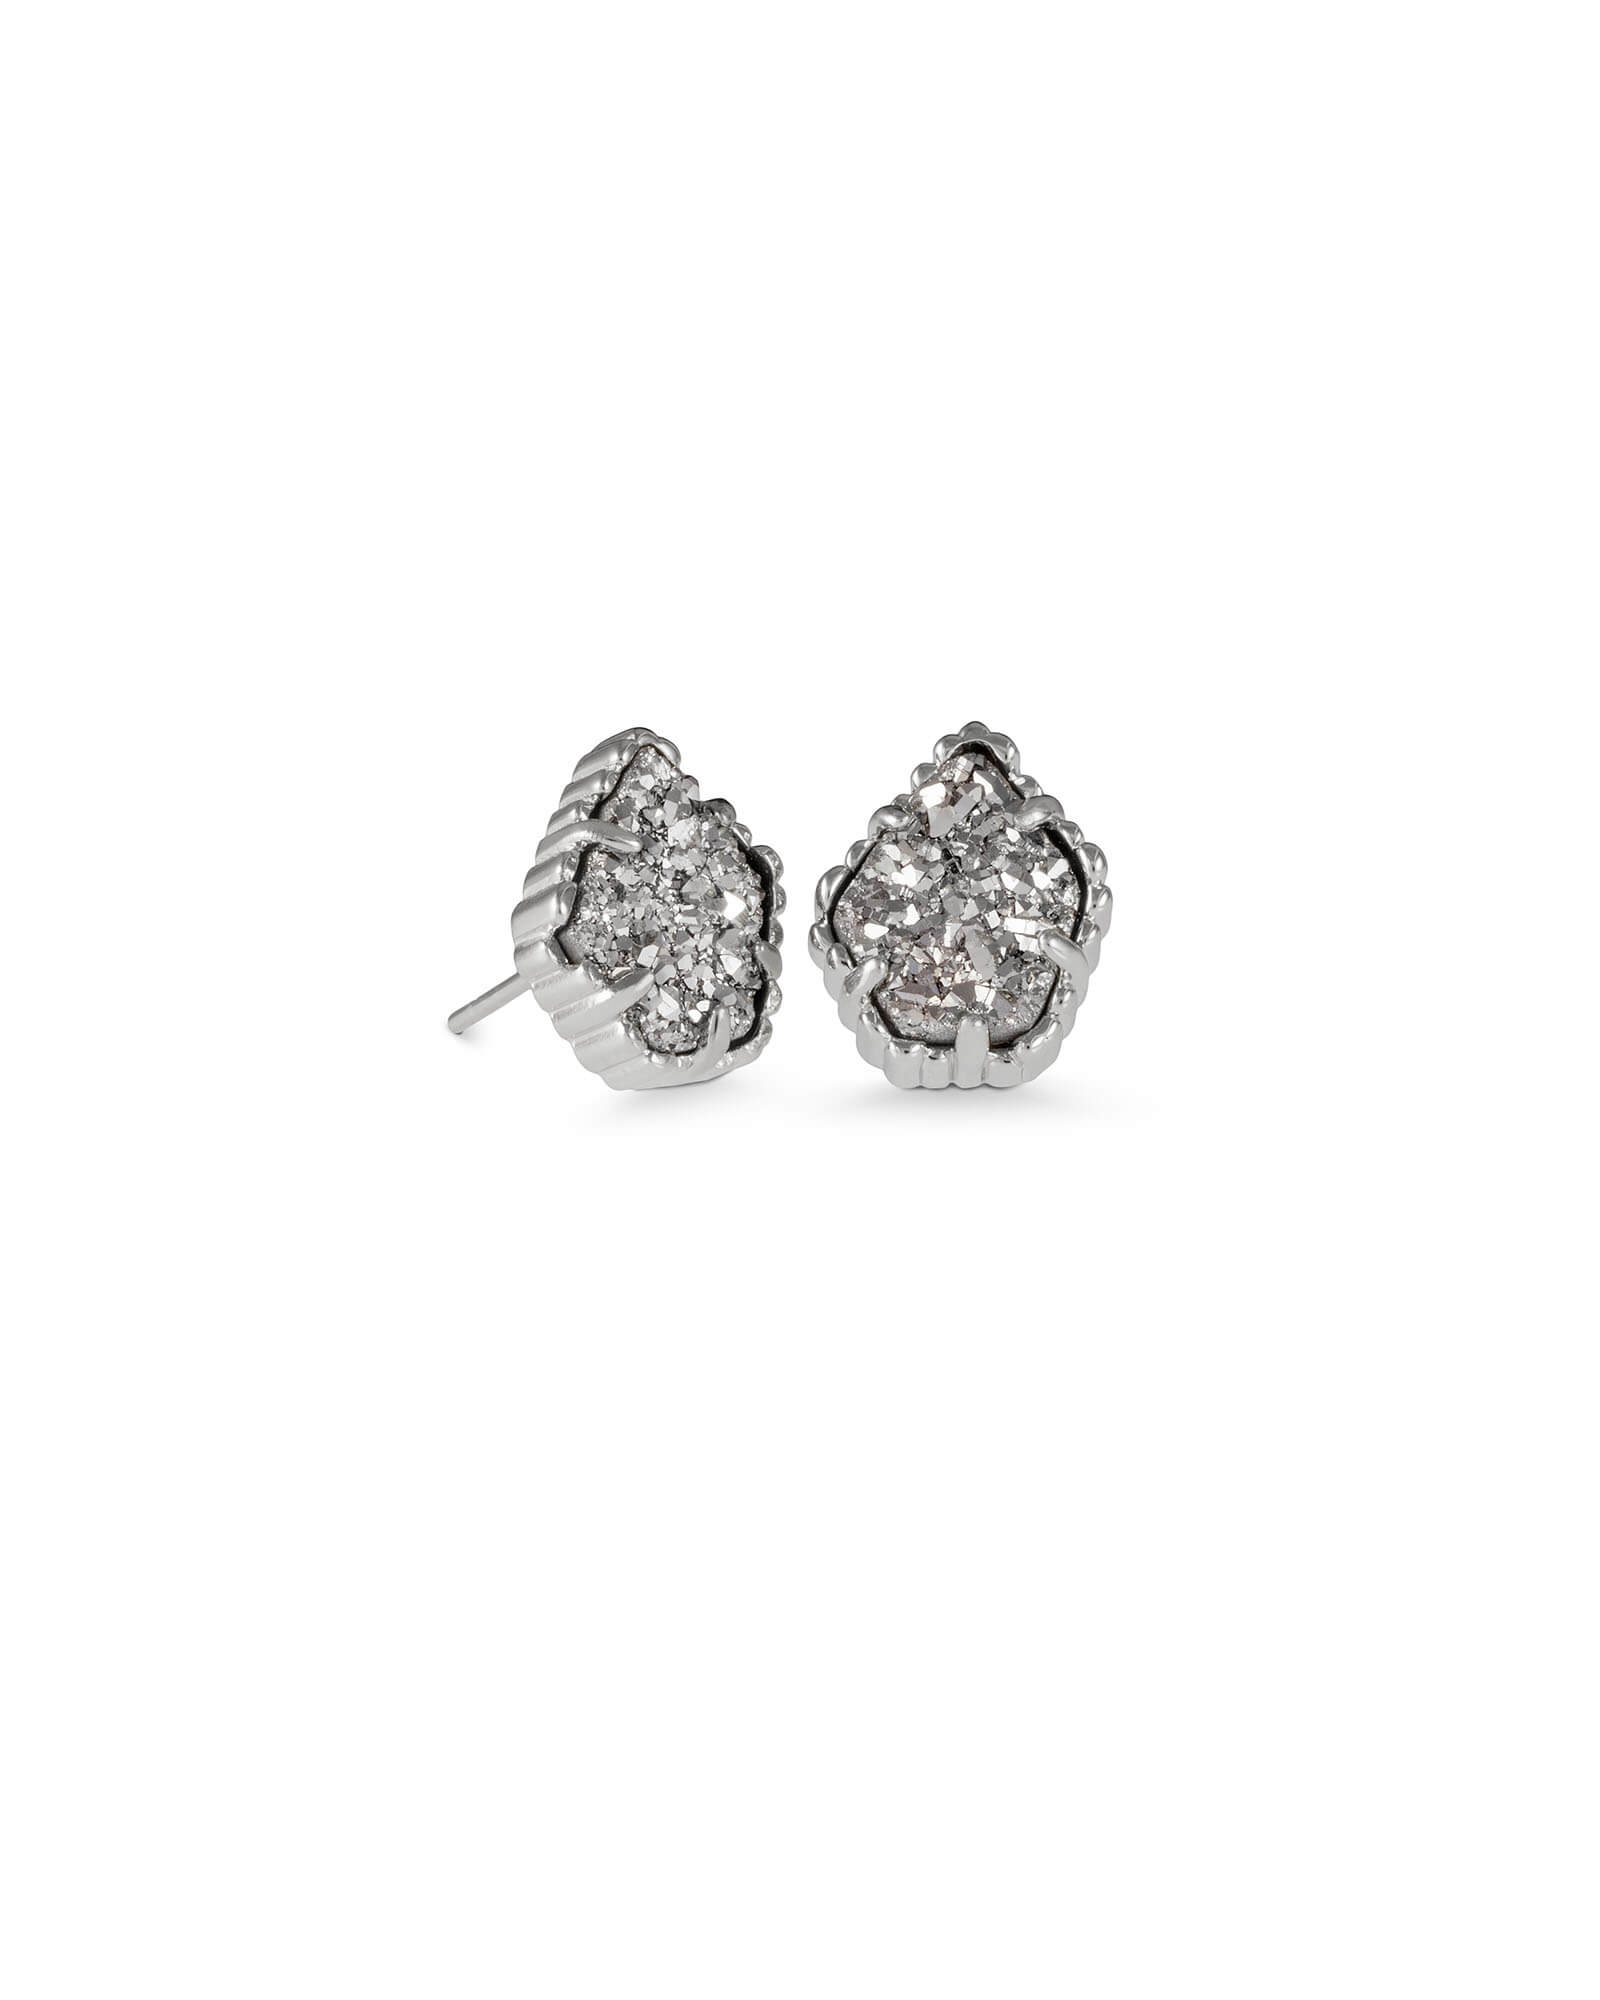 4082294e5 Tessa Silver Stud Earrings in Platinum Drusy | Kendra Scott